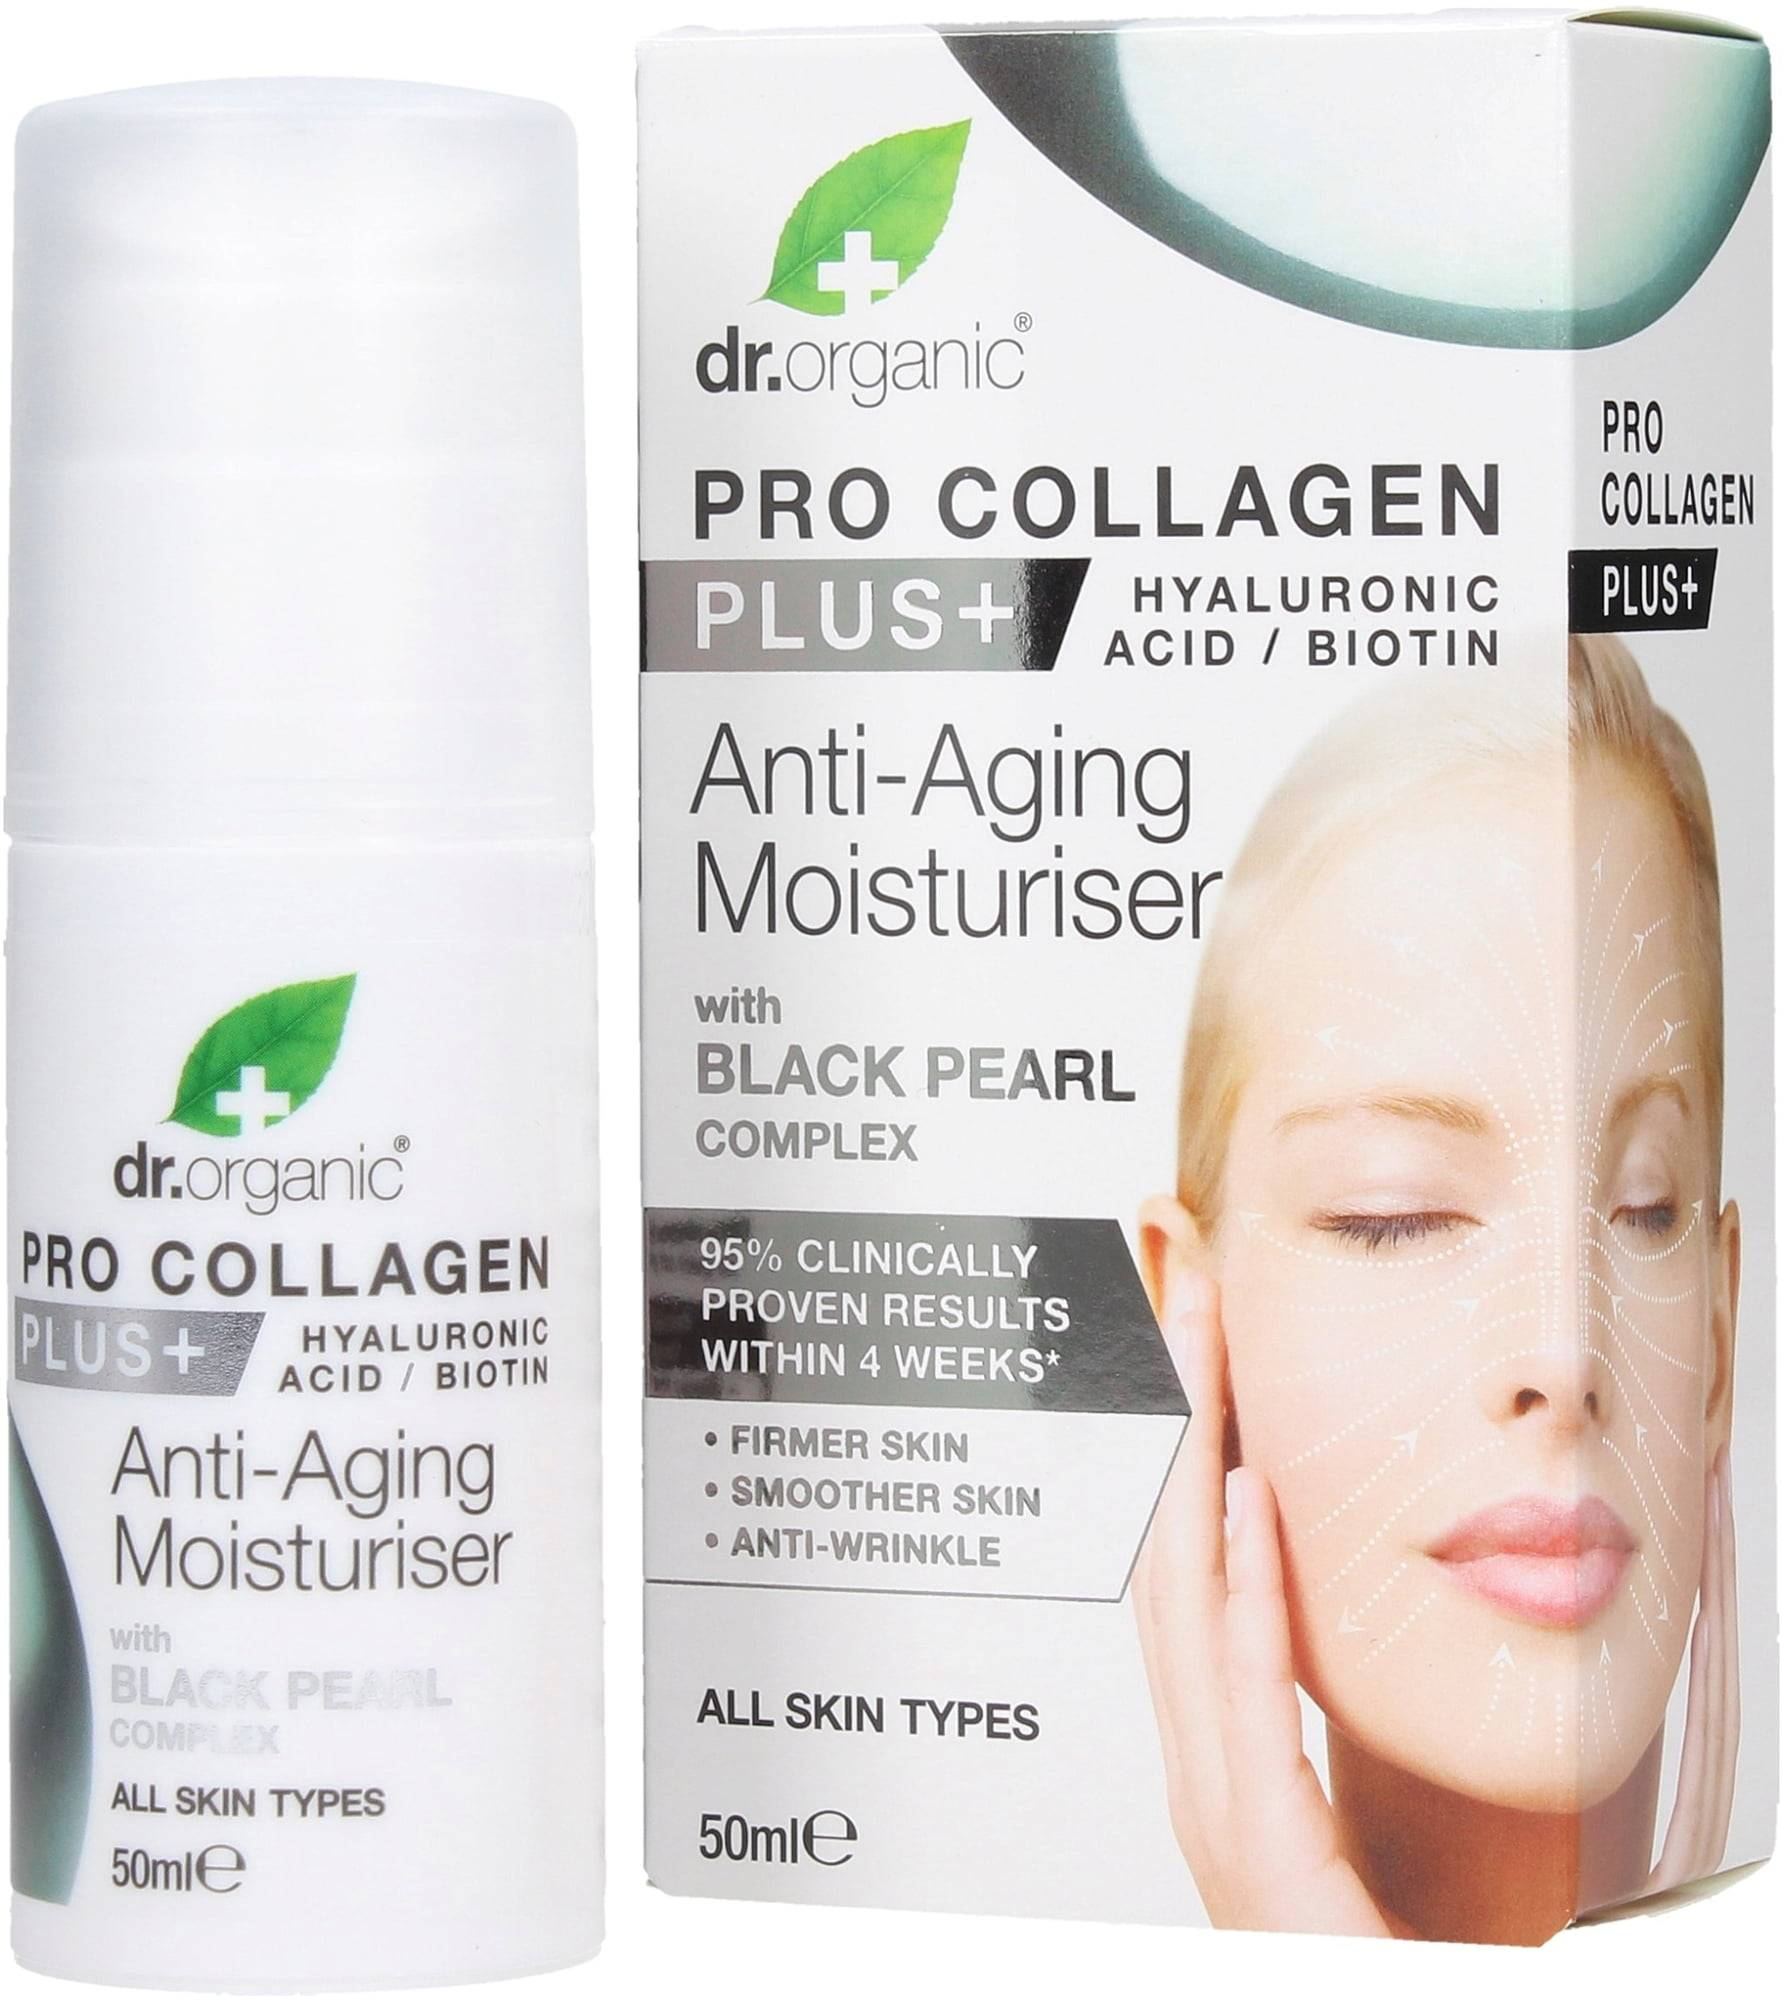 Dr. Organic Pro Collagen Plus Black Pearl Anti-Aging kosteuttaja - 50 ml